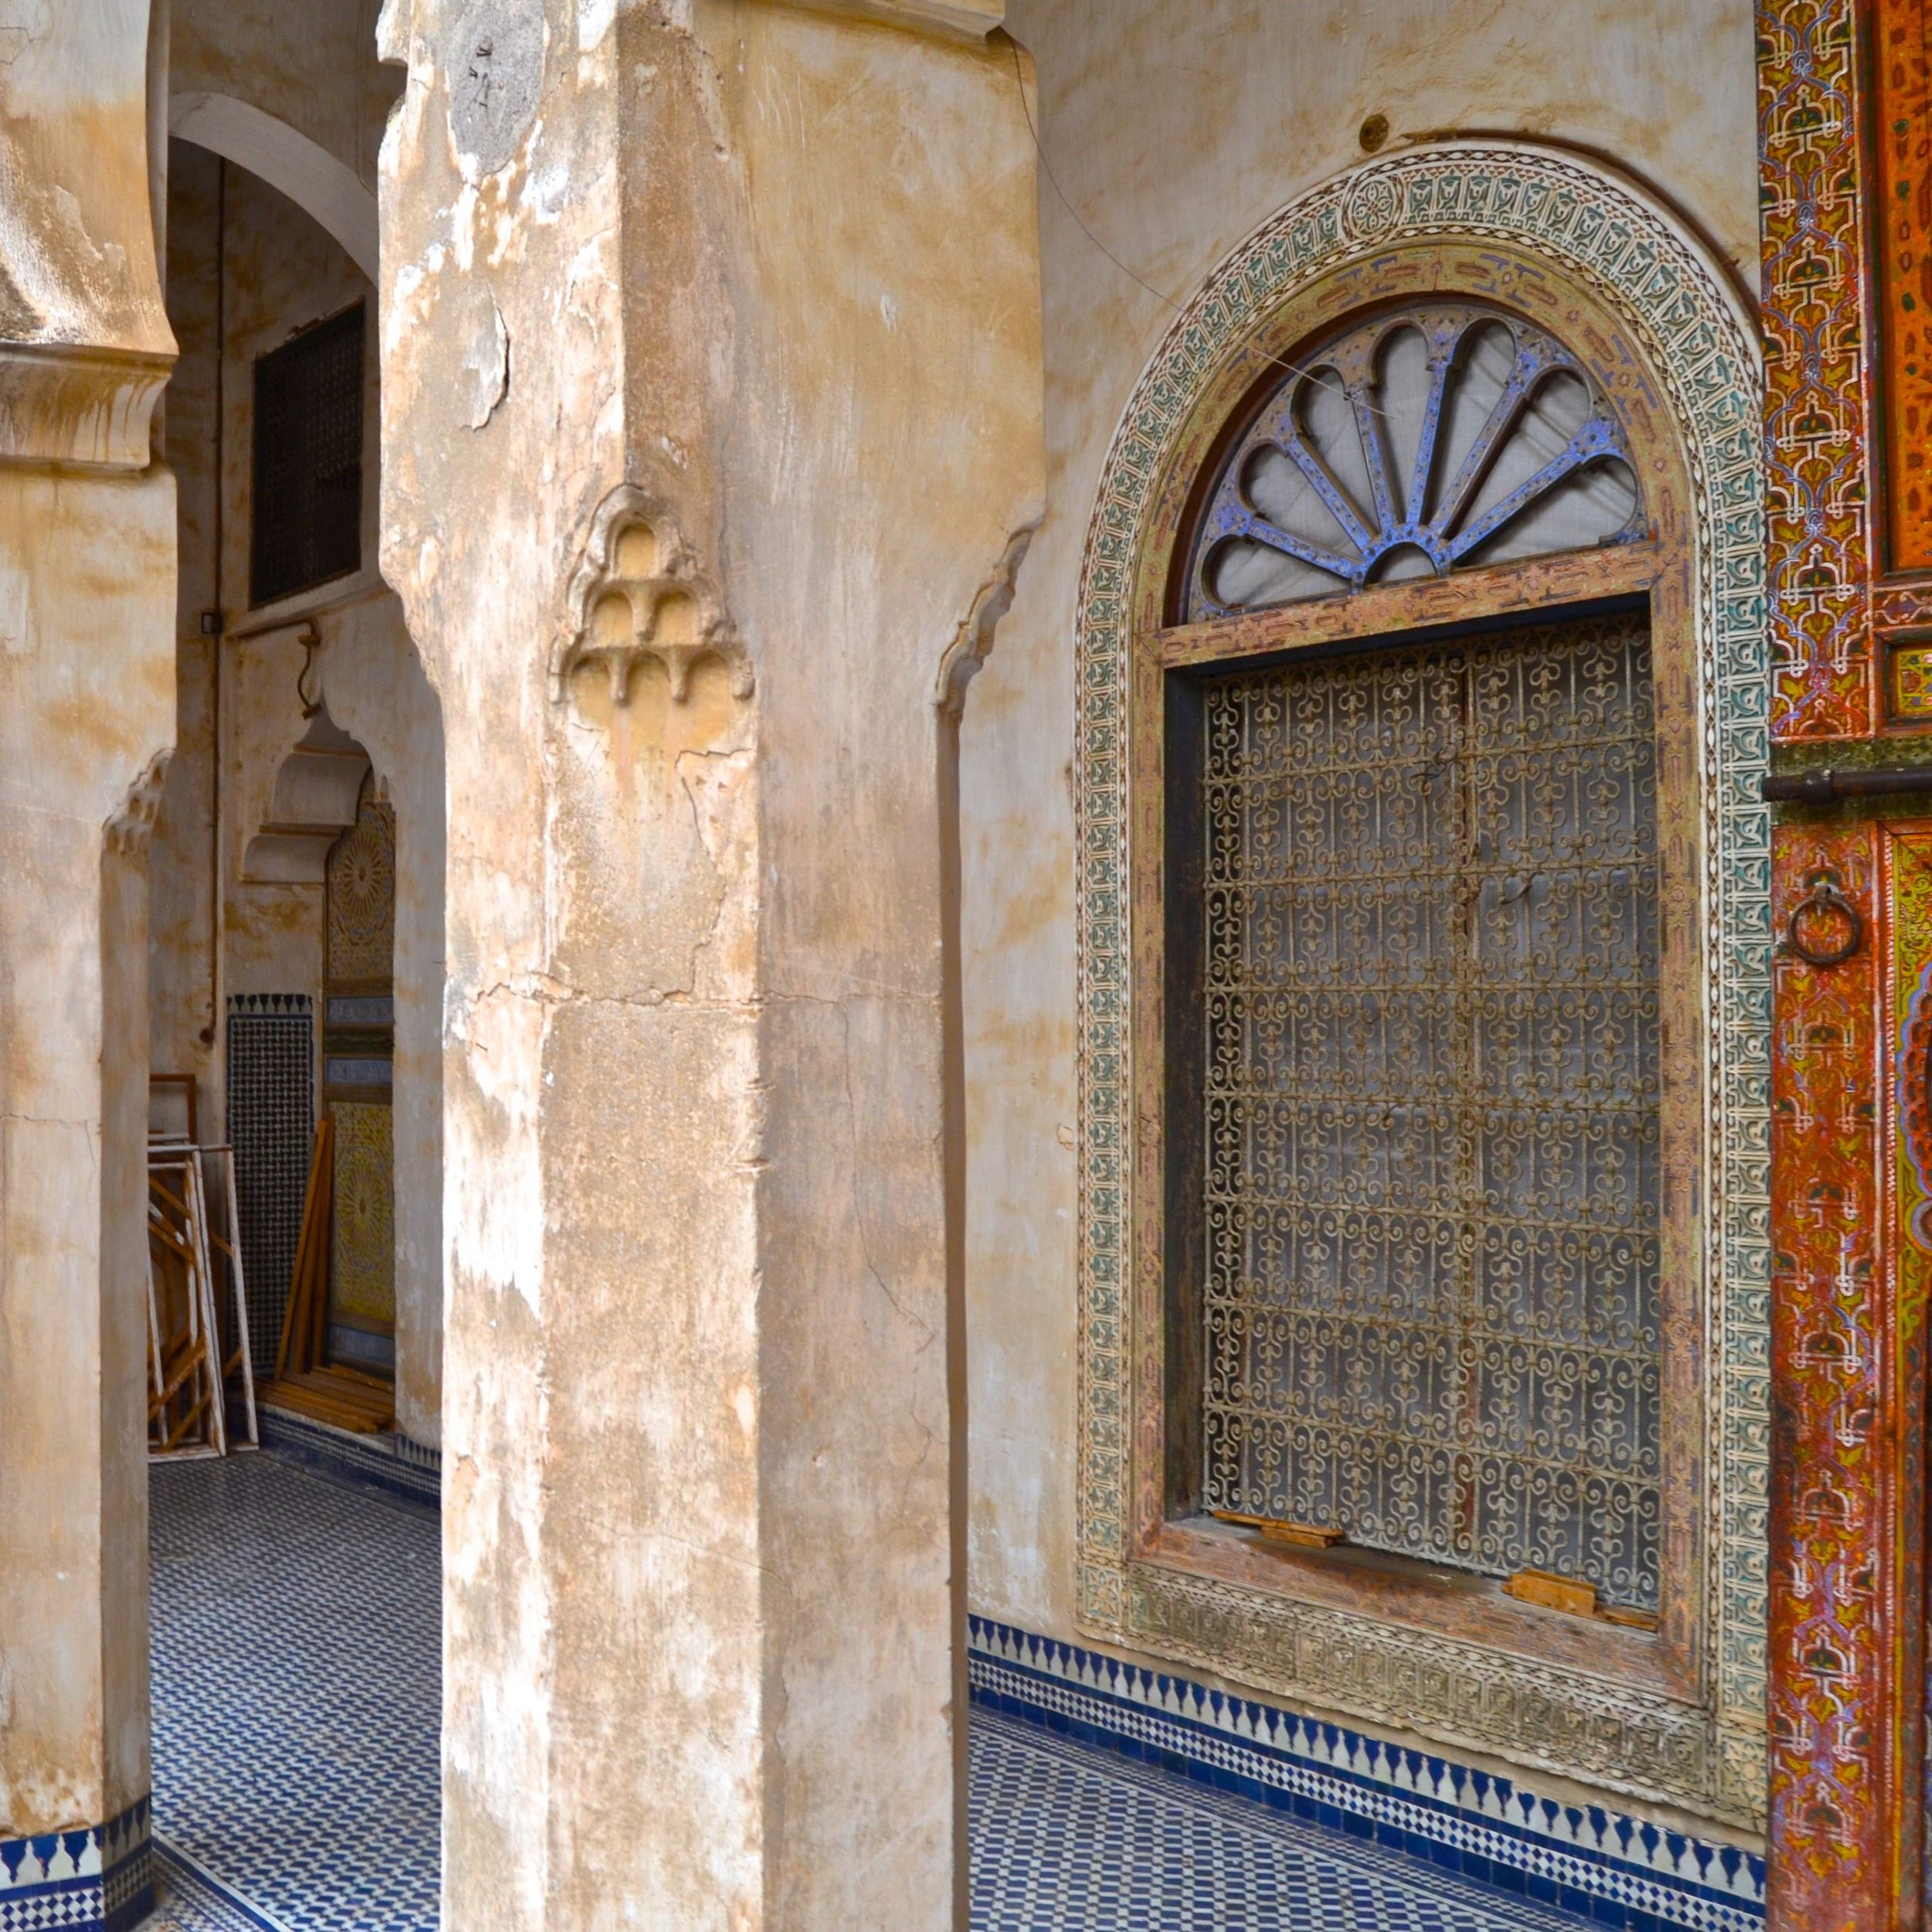 The Glaoui Palace Hallway